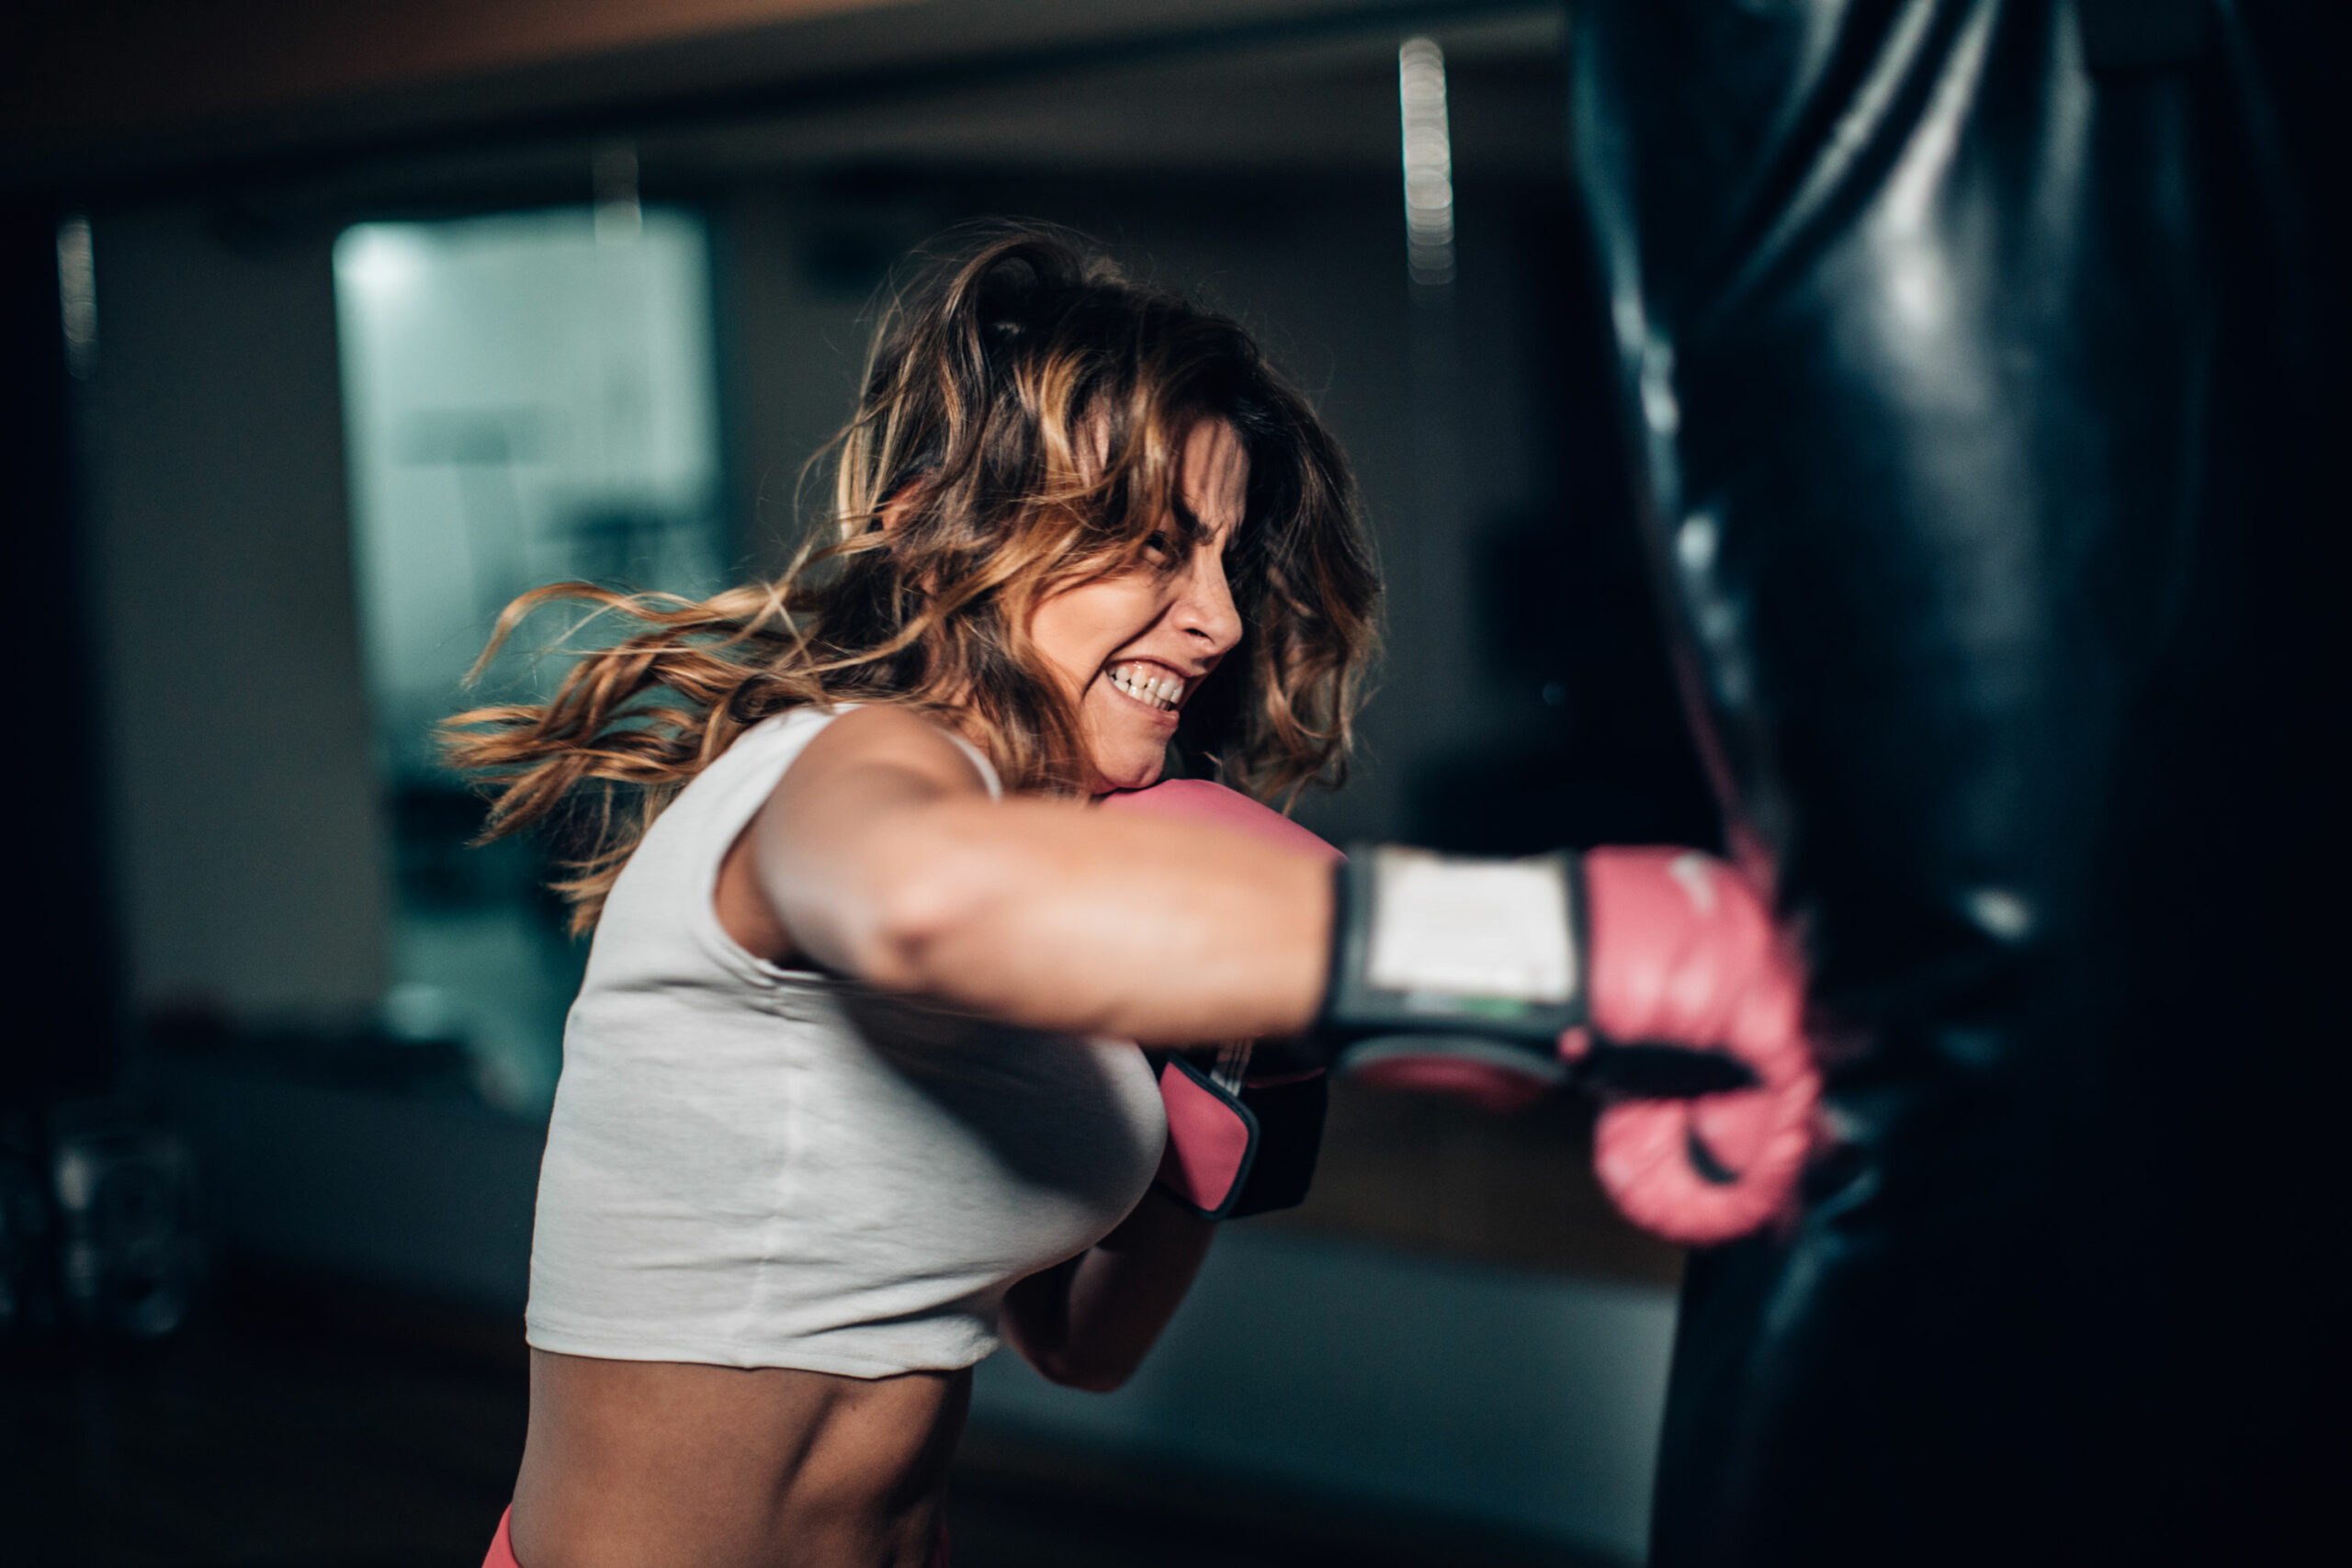 Women in Kickboxing - Debunking Common Misconceptions